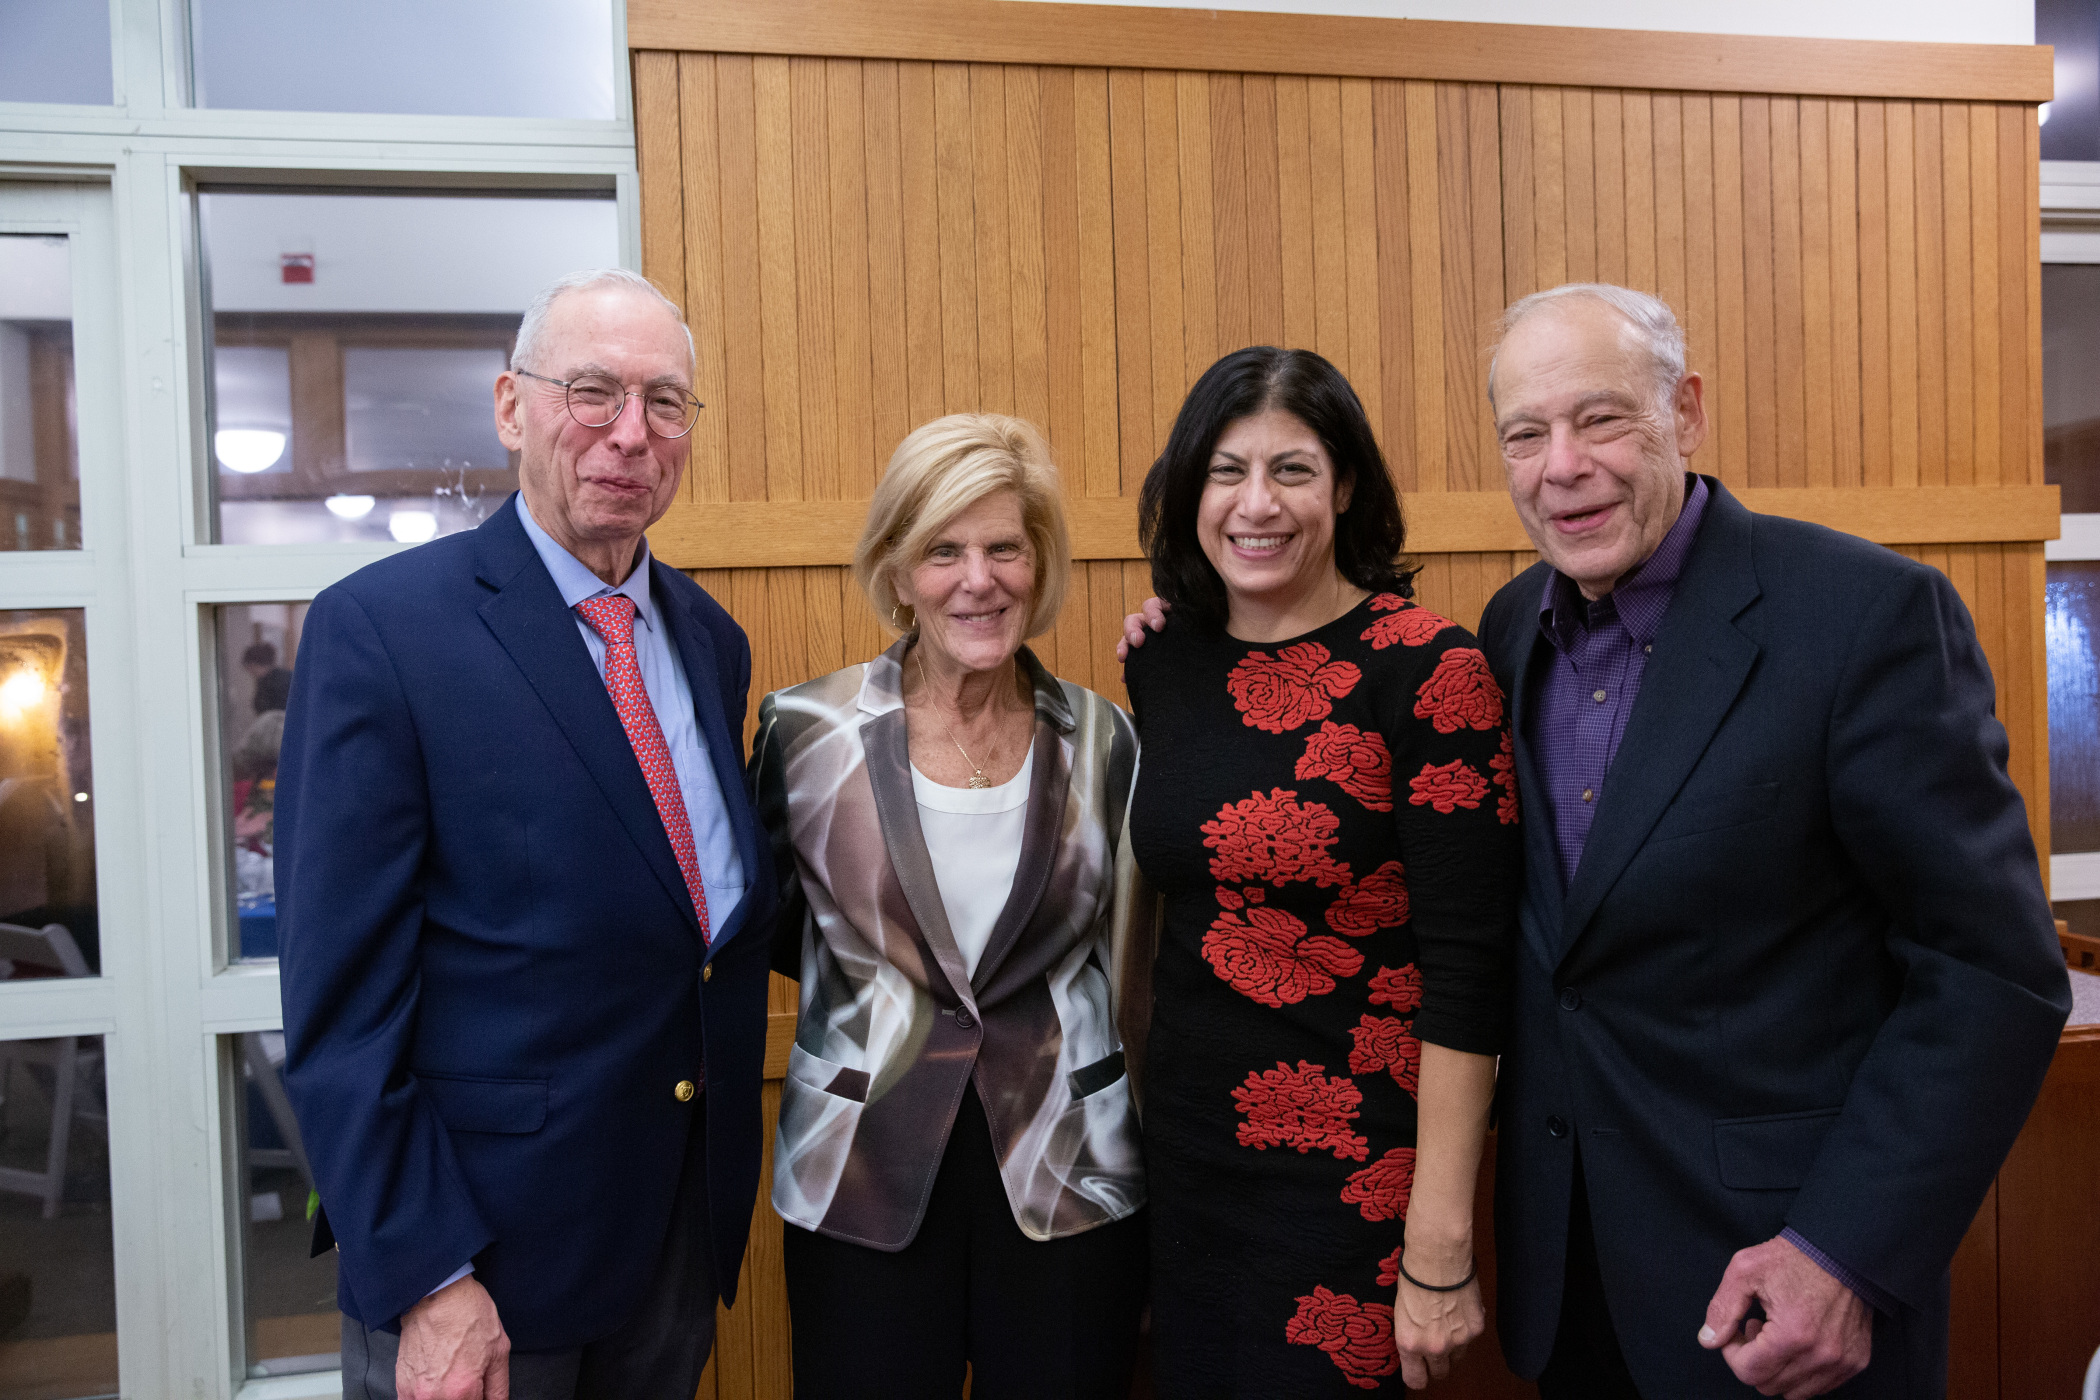 Peter E. Schwartz, MD,  Arlene Schwartz, Laurie Ginor and Igal Staw, MD